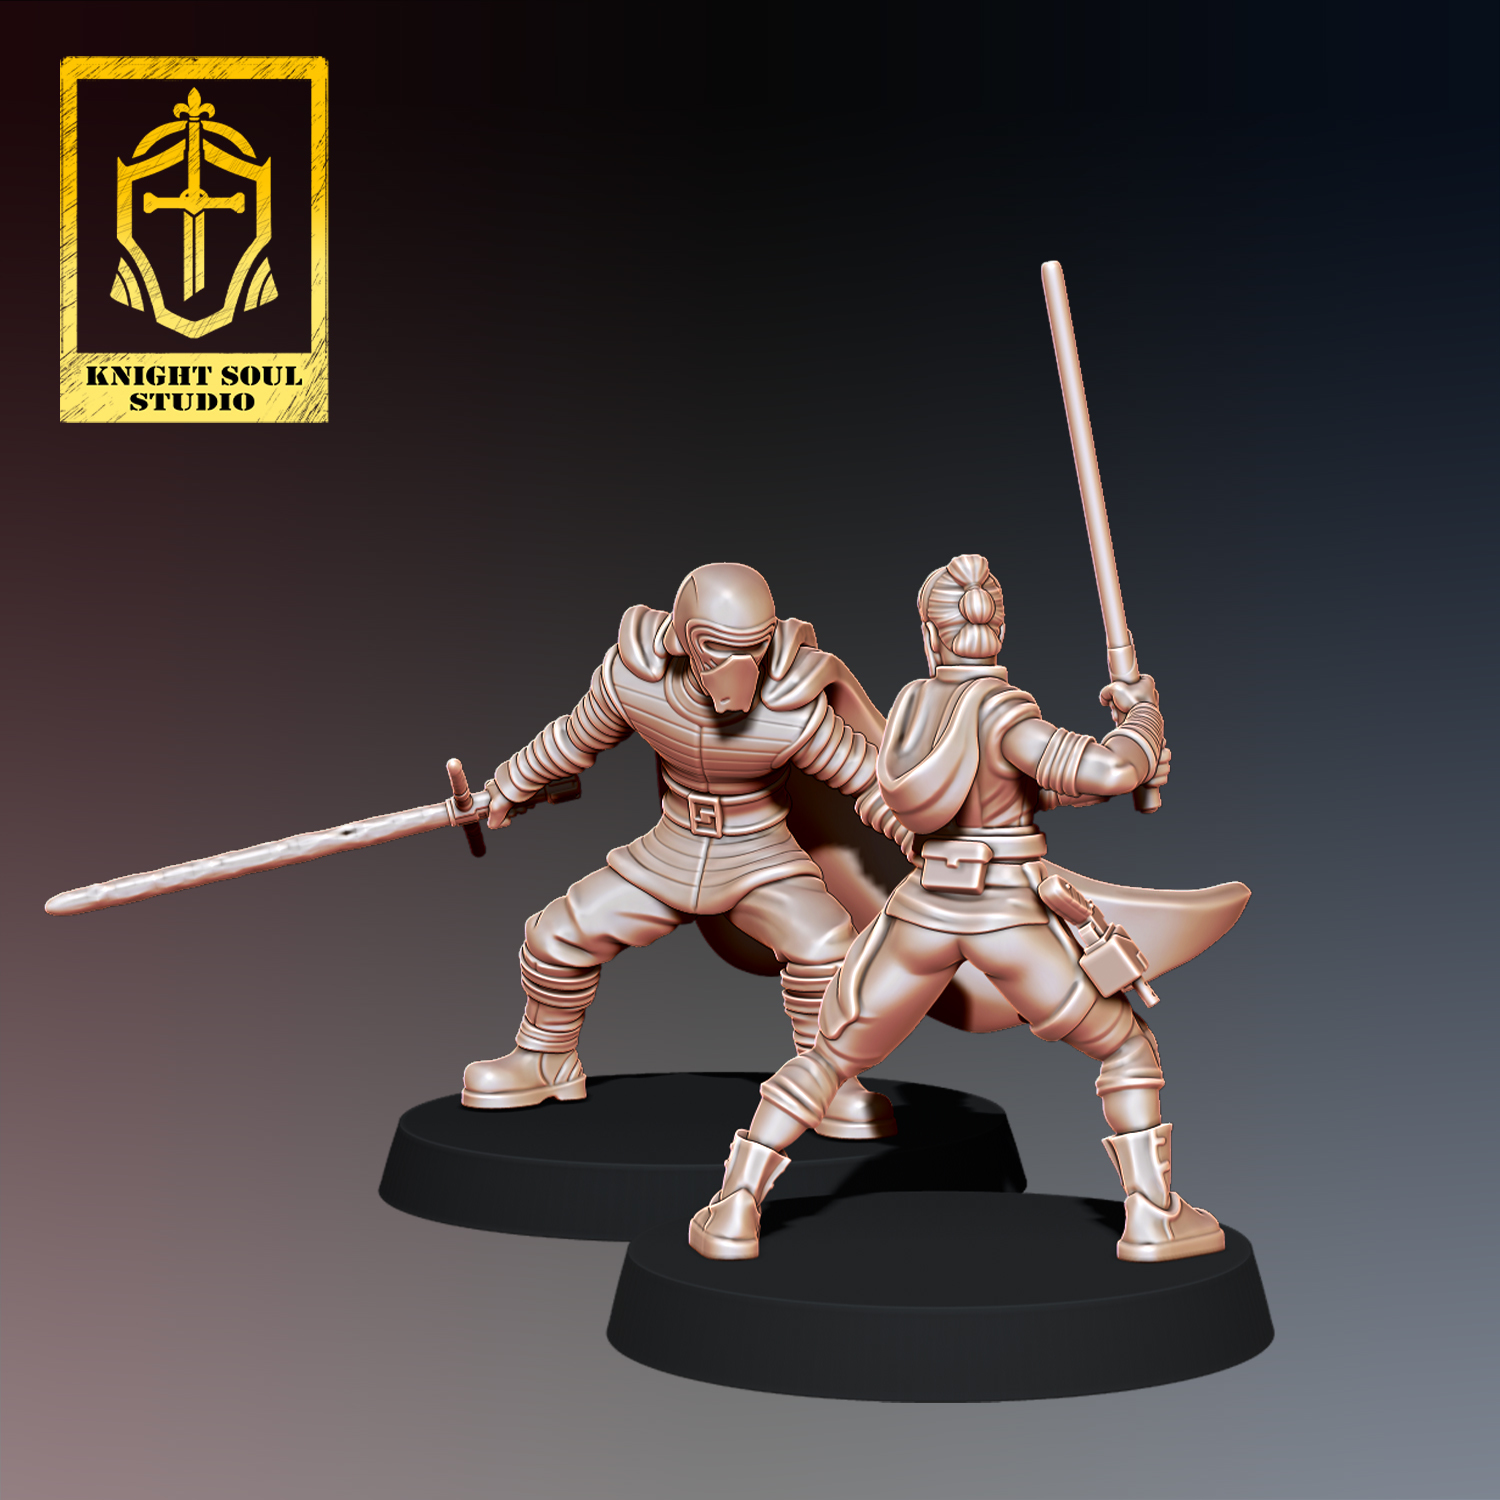 Rey v Ren 4.jpg Download STL file PACK LAST KNIGHT V FALLEN KNIGHT • 3D printer model, KnightSoul_Studio